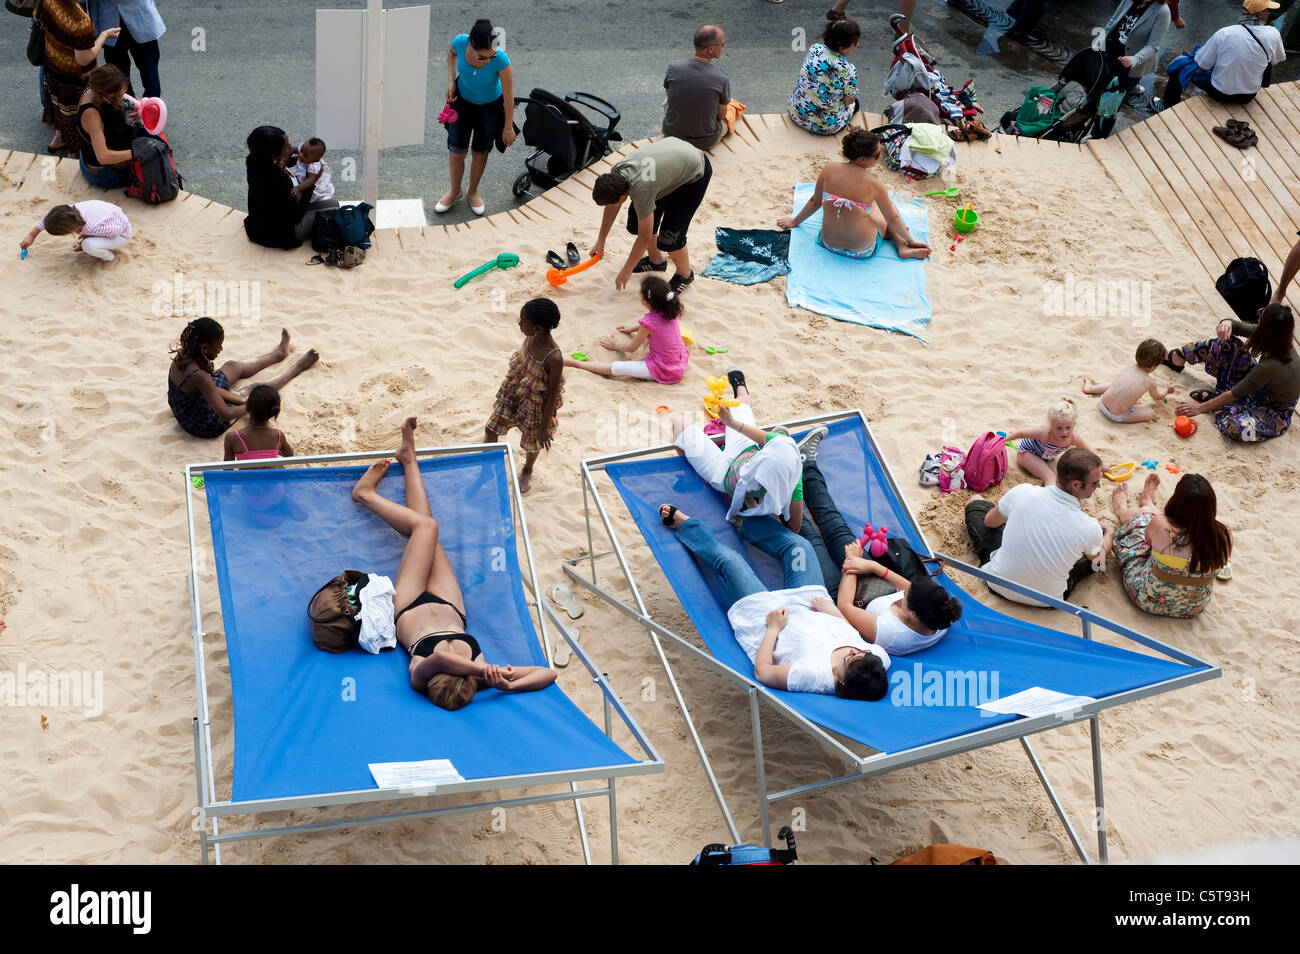 Paris, France Aug 2011 - People enjoying artificial beach during the summer 'Paris Plage' event on the quay - Stock Image